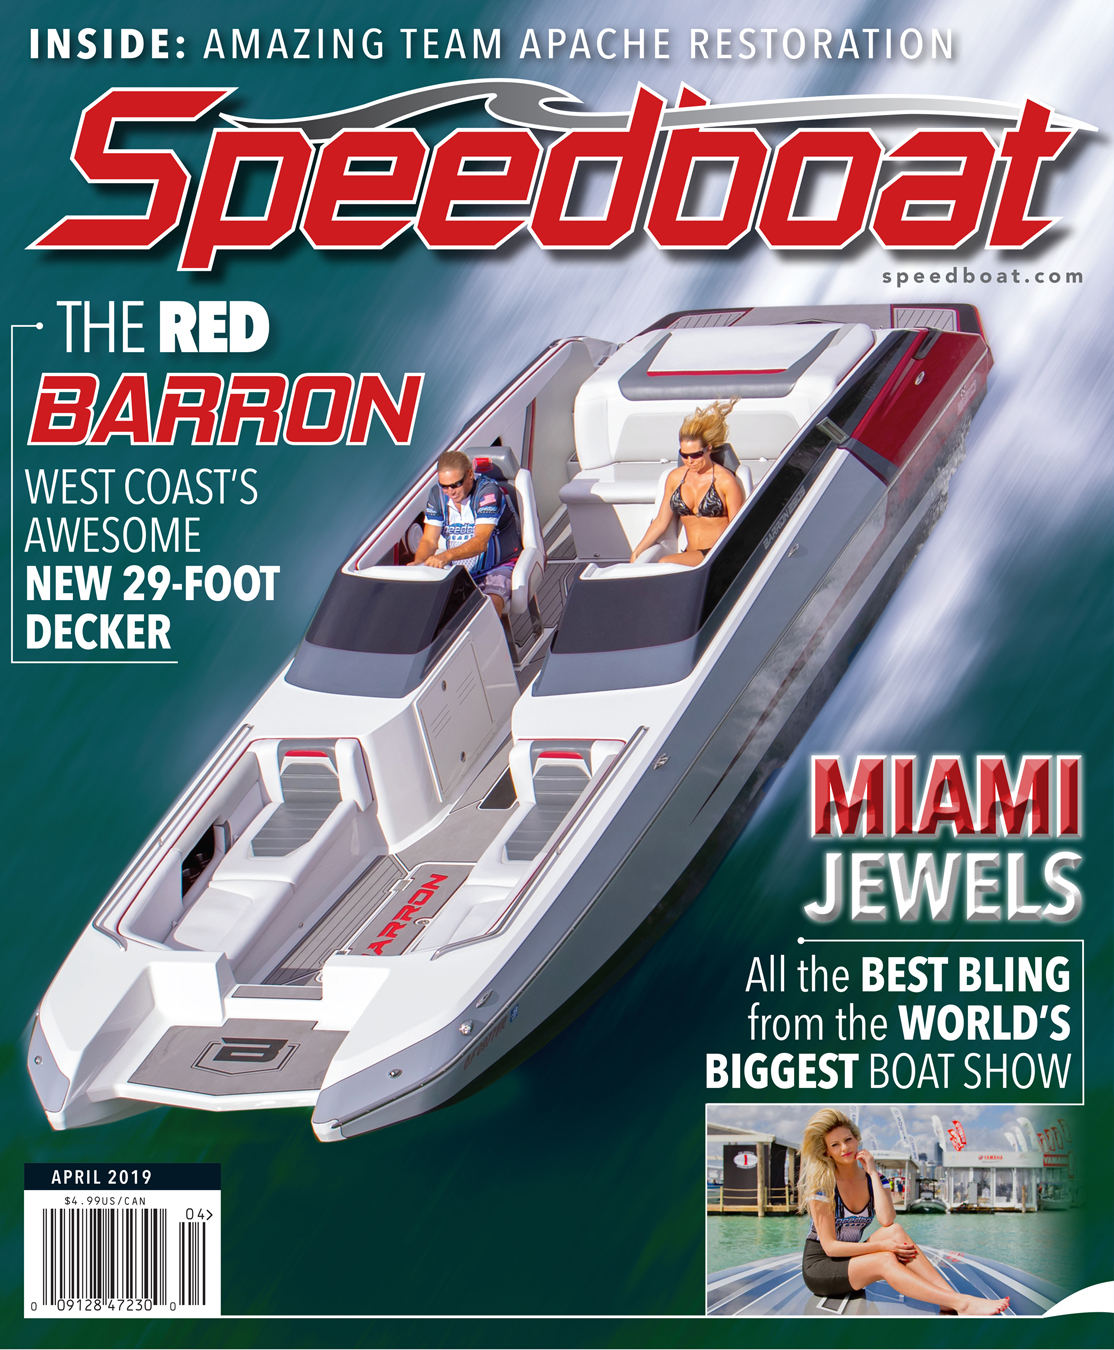 News_02_Speedboat.jpg